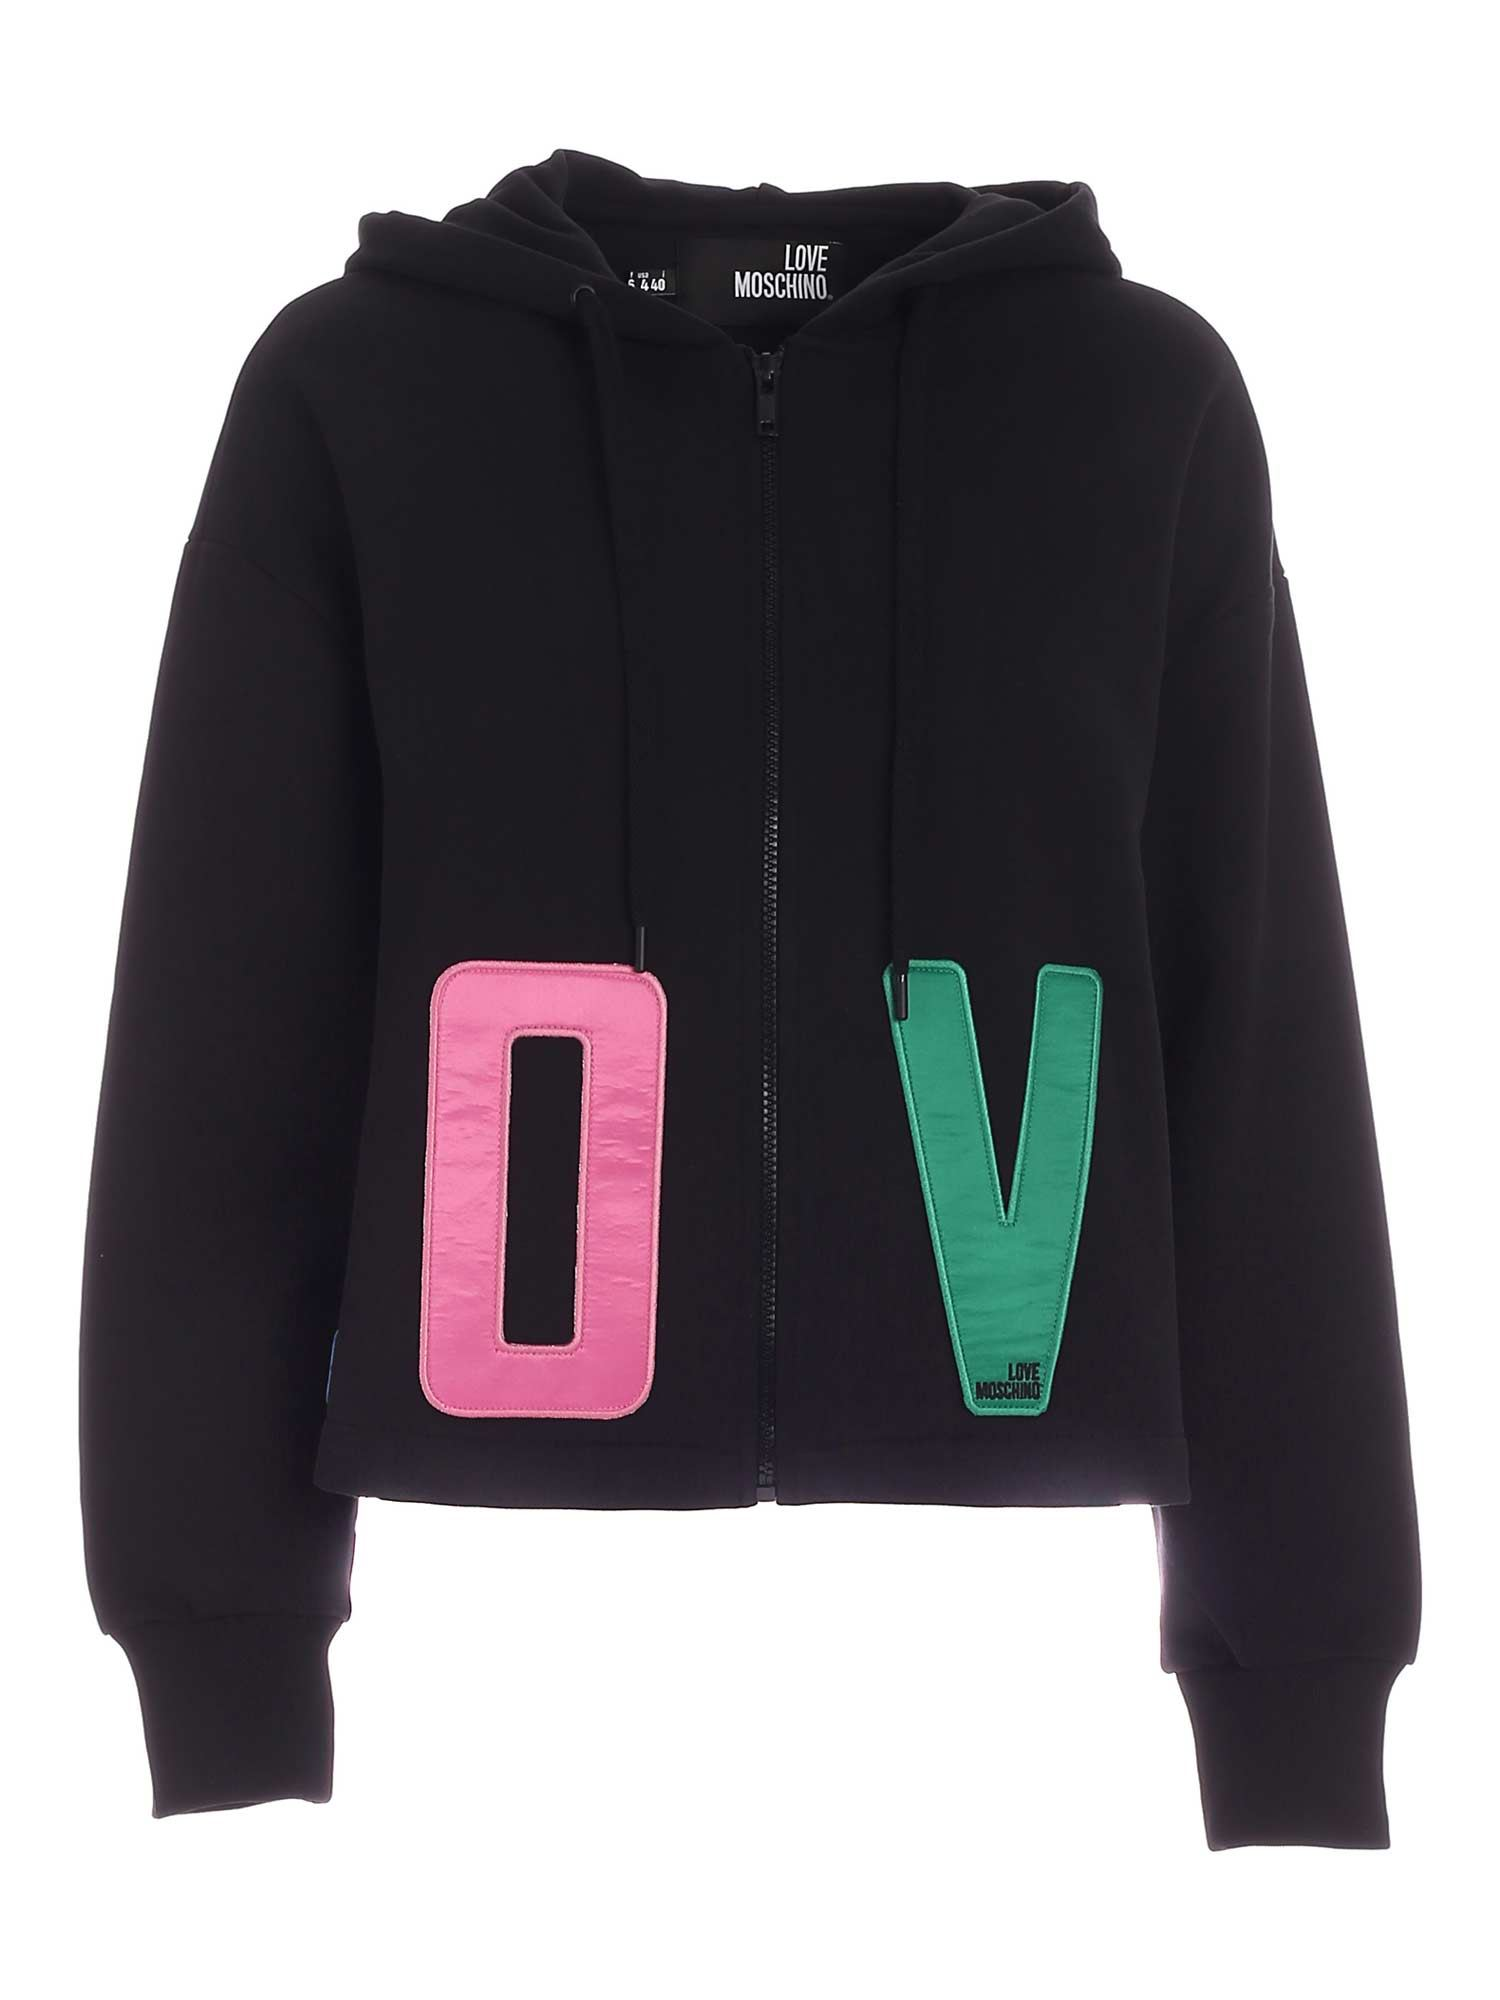 Love Moschino LOVE OVERSIZE SWEATSHIRT IN BLACK